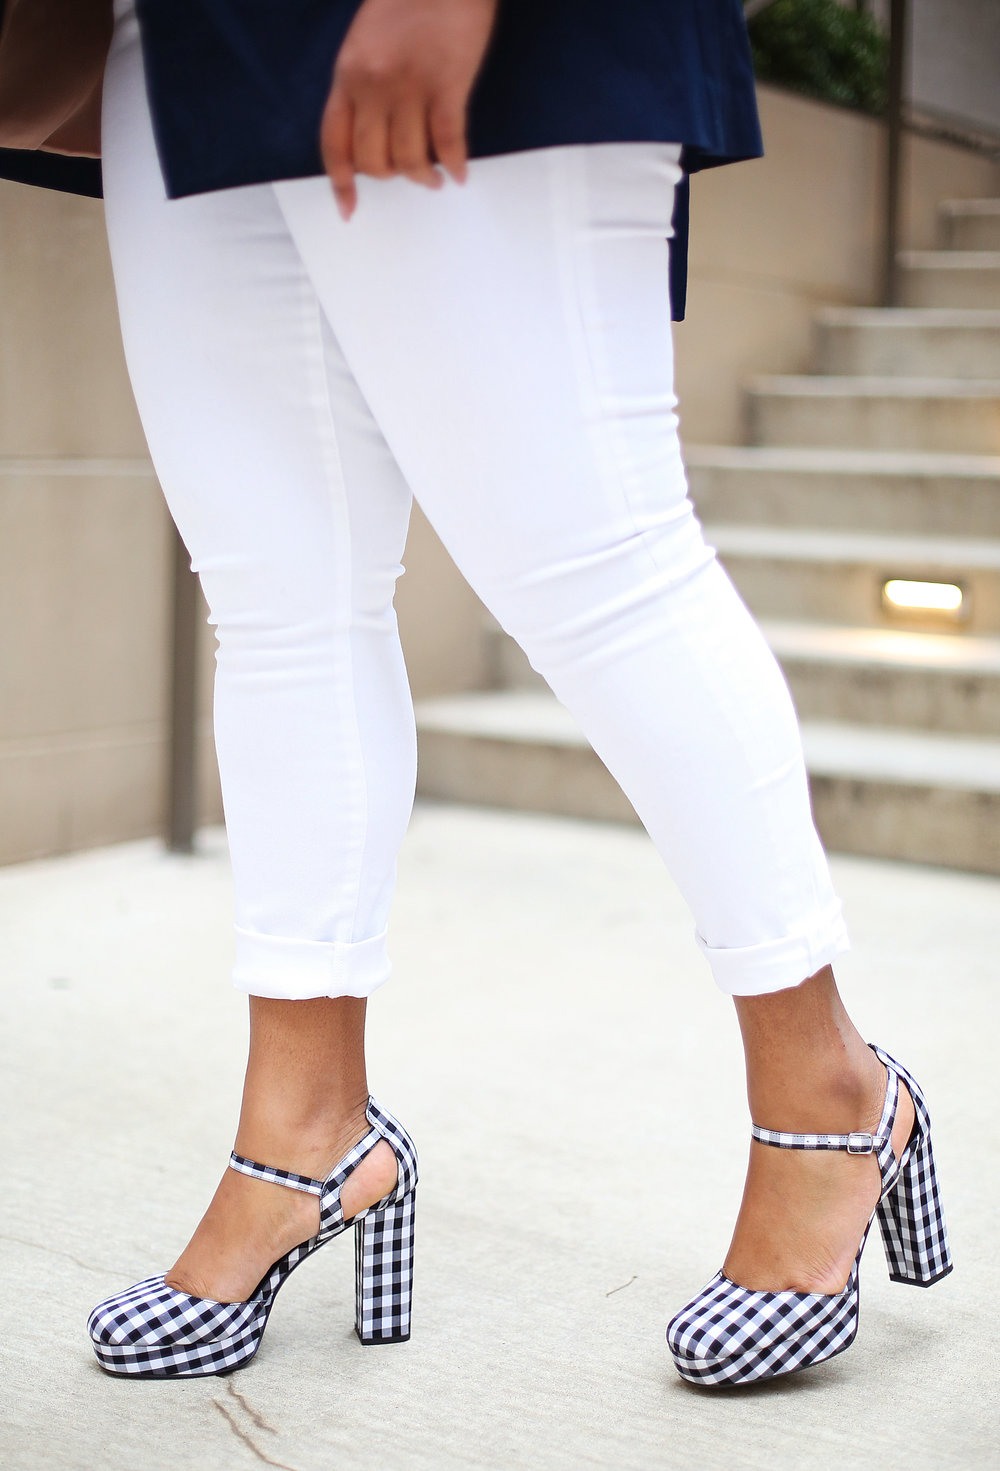 Plus Size Blogger All WHite Spring Style Hayet Rida Chicago Influencer Stitch Fix 10.jpg